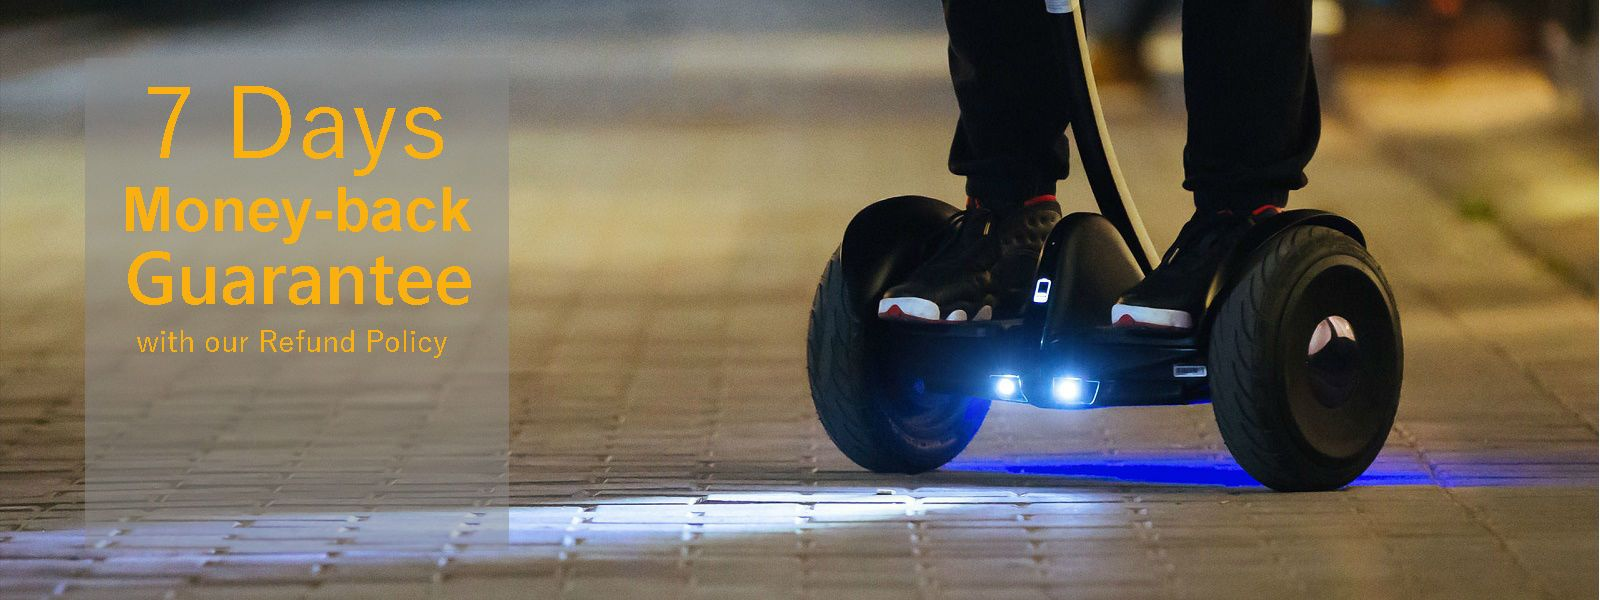 Smart Hoverboards, Segways, Electric Twin-wheel Self-balancing Boards from Smart Skate n Cycle